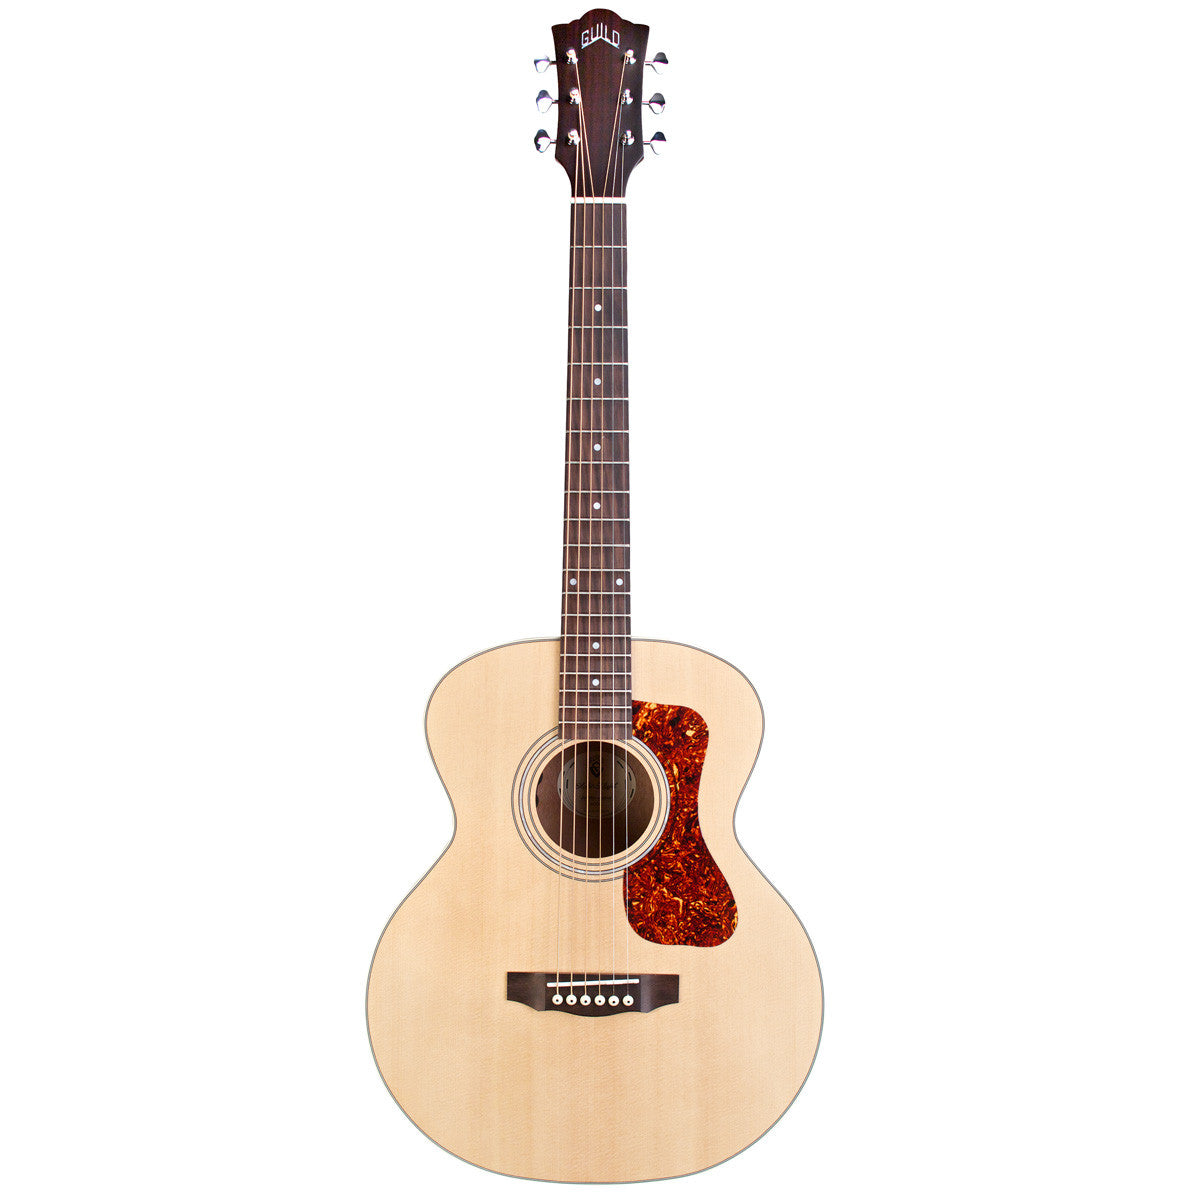 Guild Jumbo Junior MH - Natural - Vintage Guitar Boutique - 2